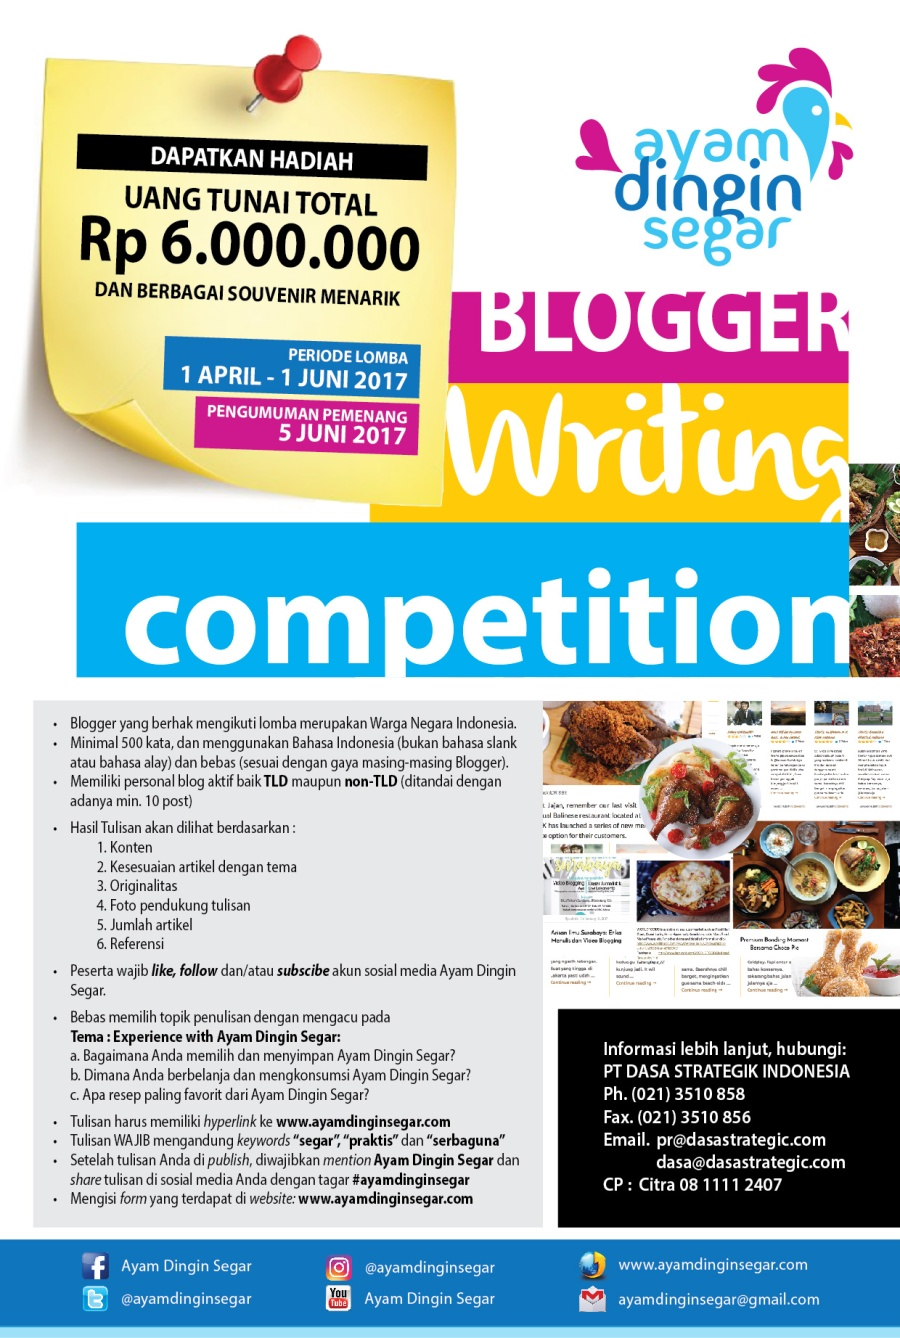 Ayam Dingin Segar Blogwriting Competition